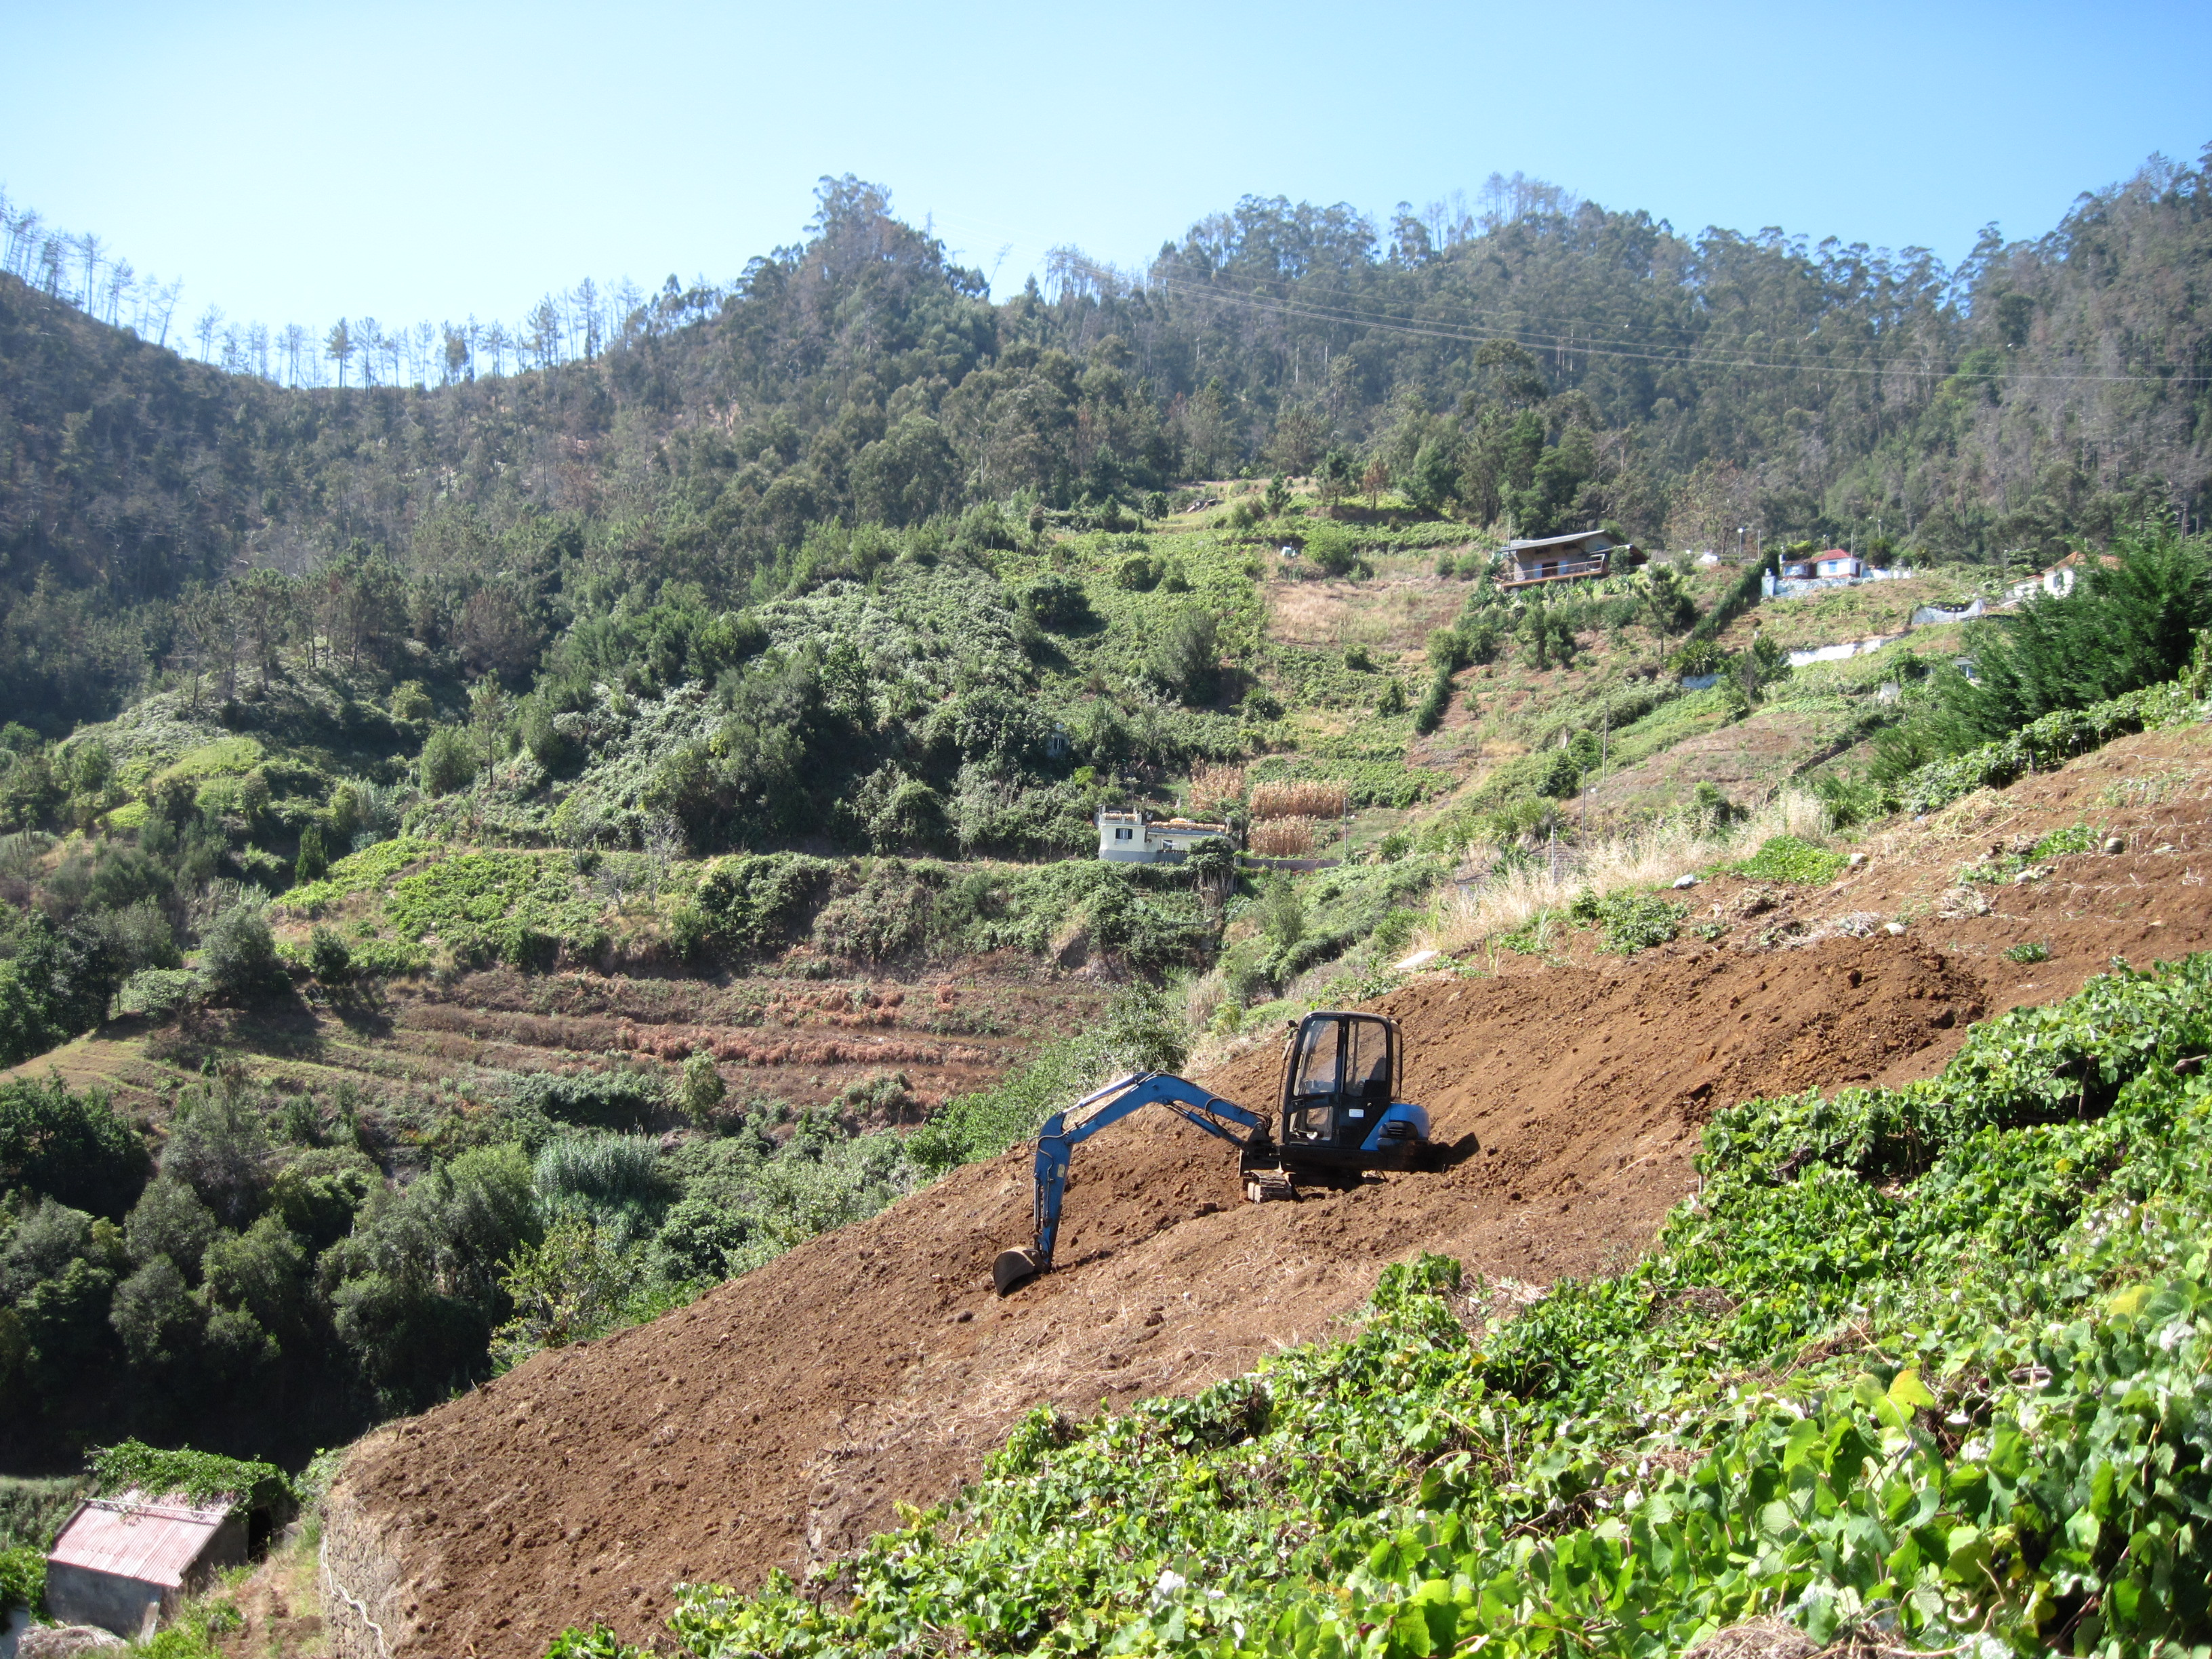 Mechanisation in farming on Madeira